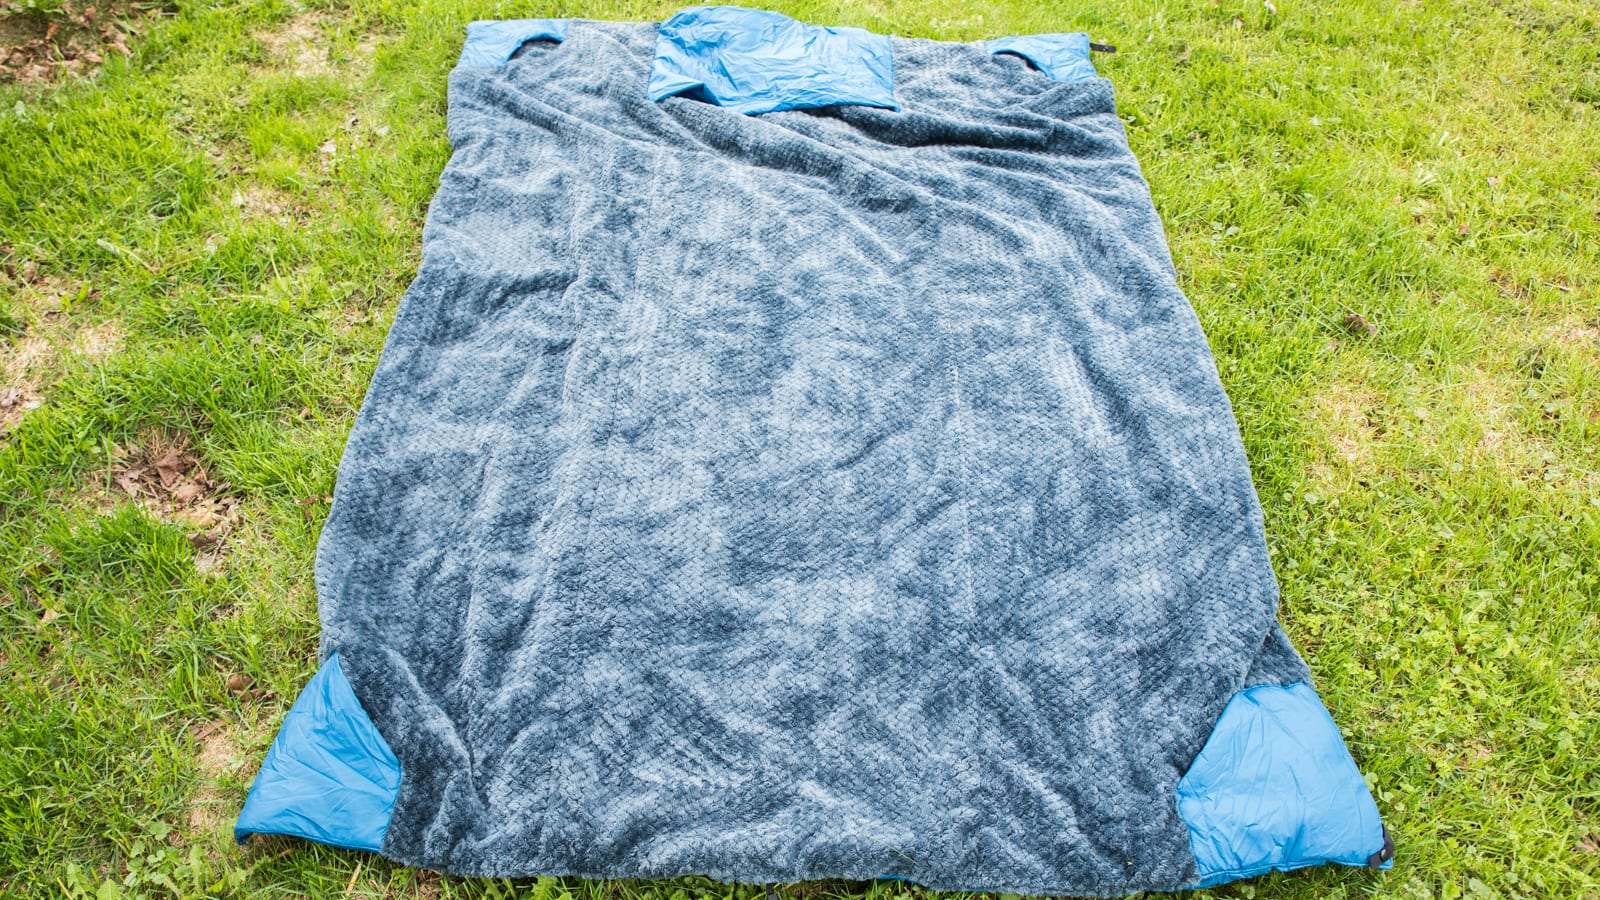 Wrap It Up This Summer With The Klymit Versa Blanket